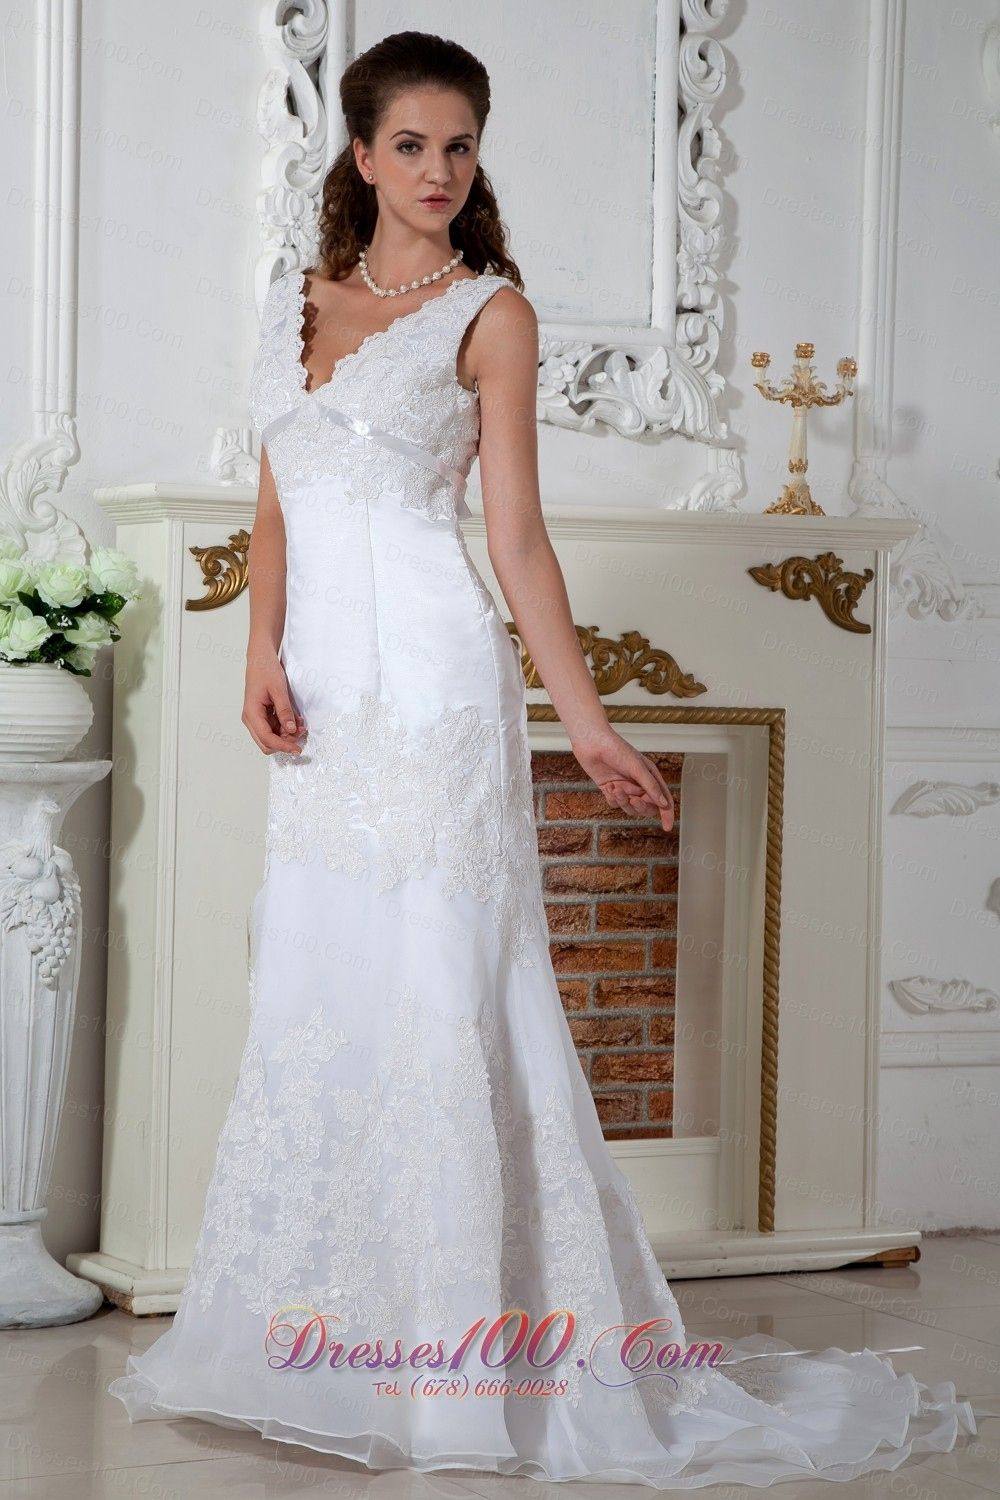 Sell Your Wedding Dress Online for Free - Best Dresses for Wedding ...